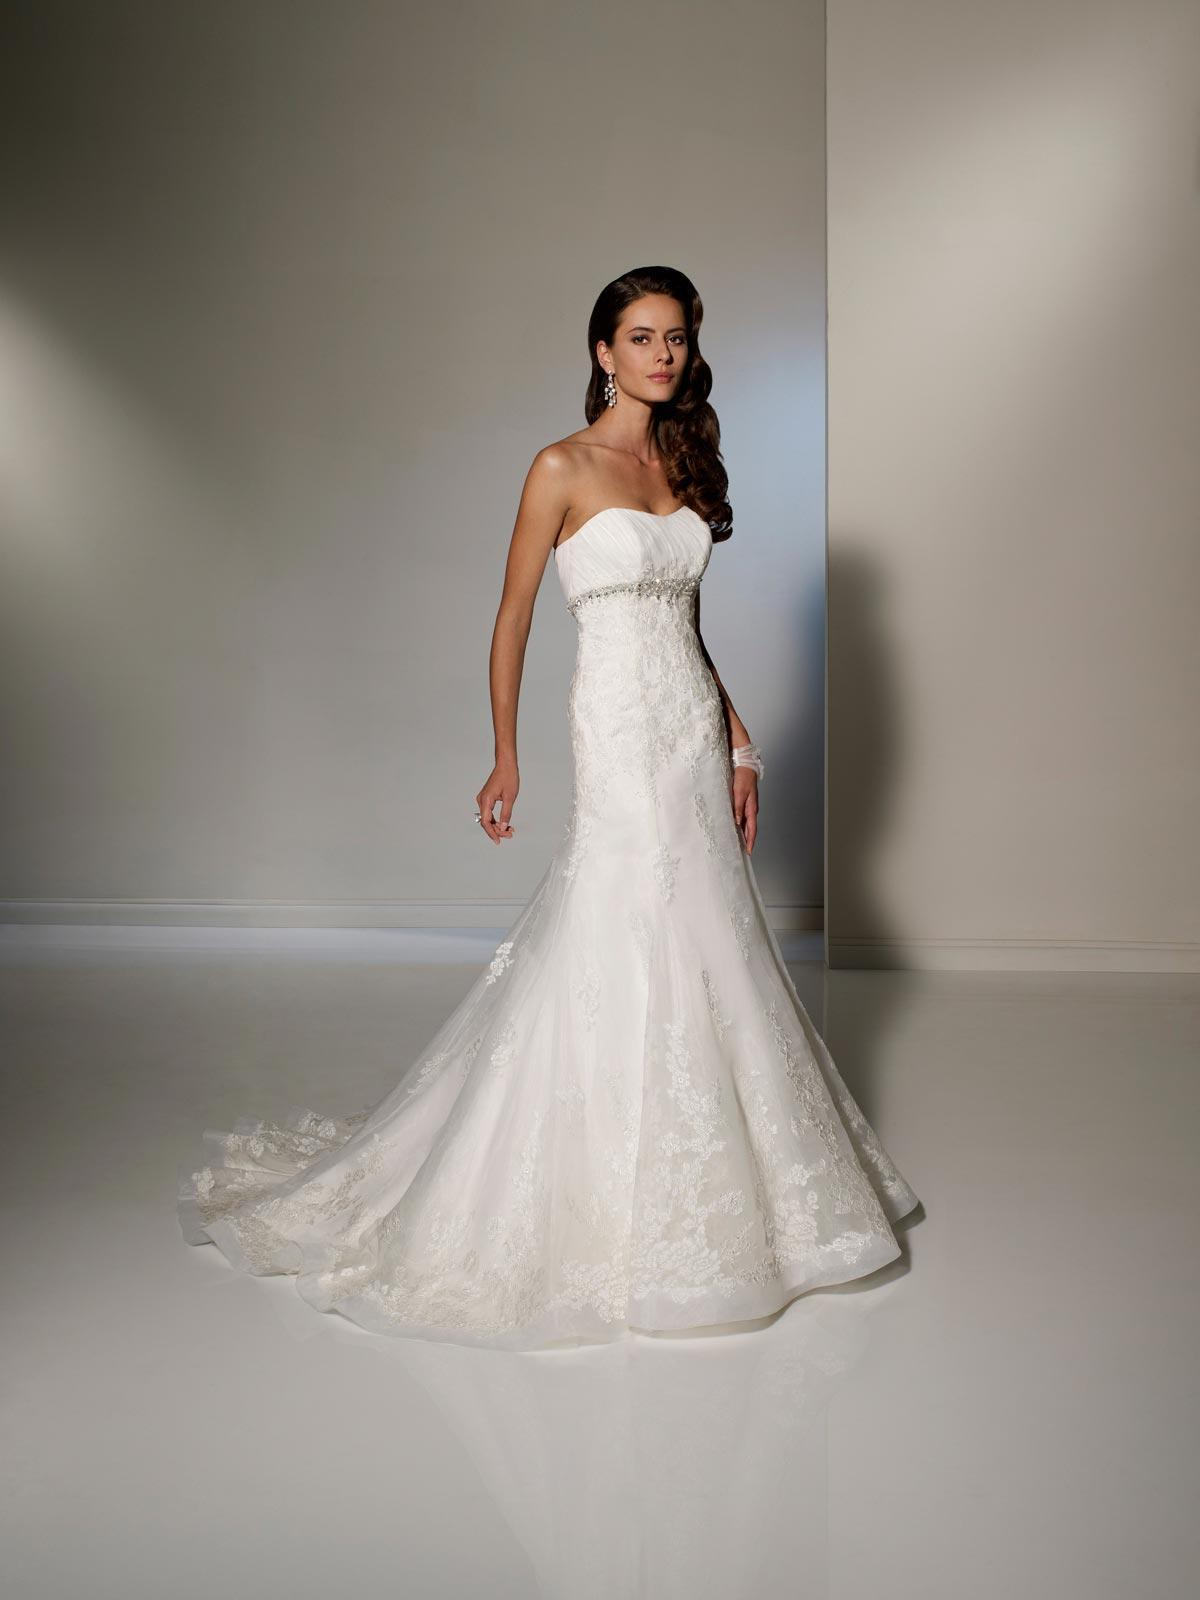 Romantic Wedding Gown Crystal